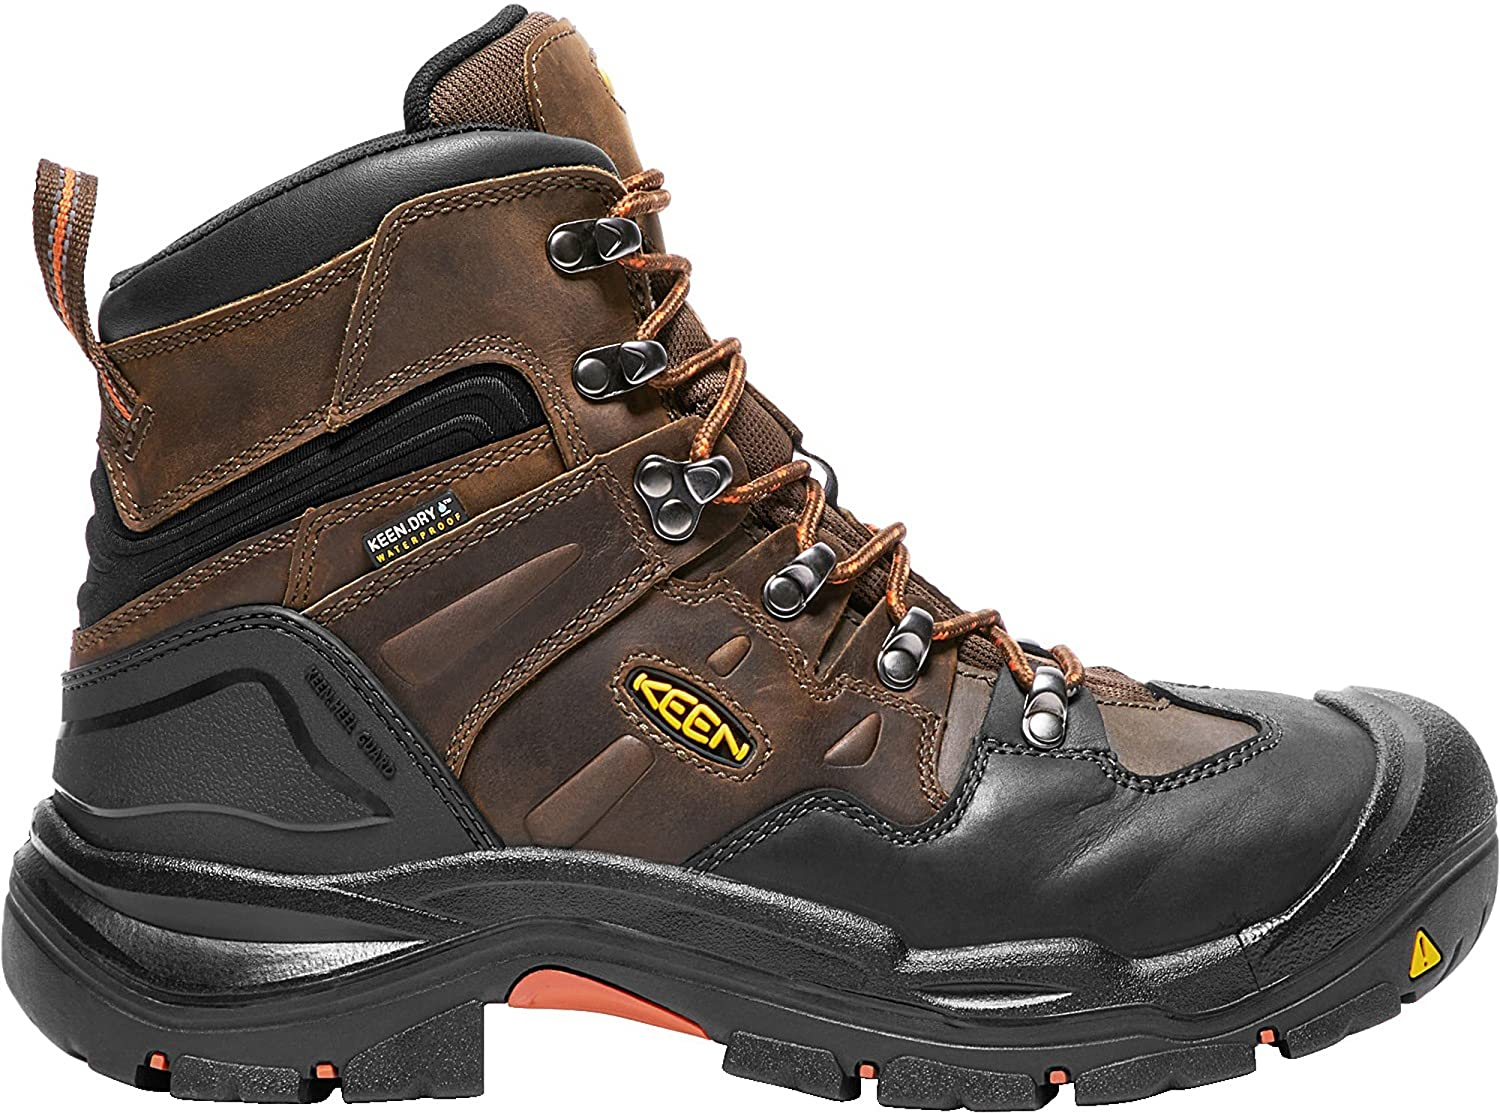 Keen Utility メンズ Cascade Brown/Brindle 12 2E US 12 2E USCascade Brown/Brindle B01N7RAP7F